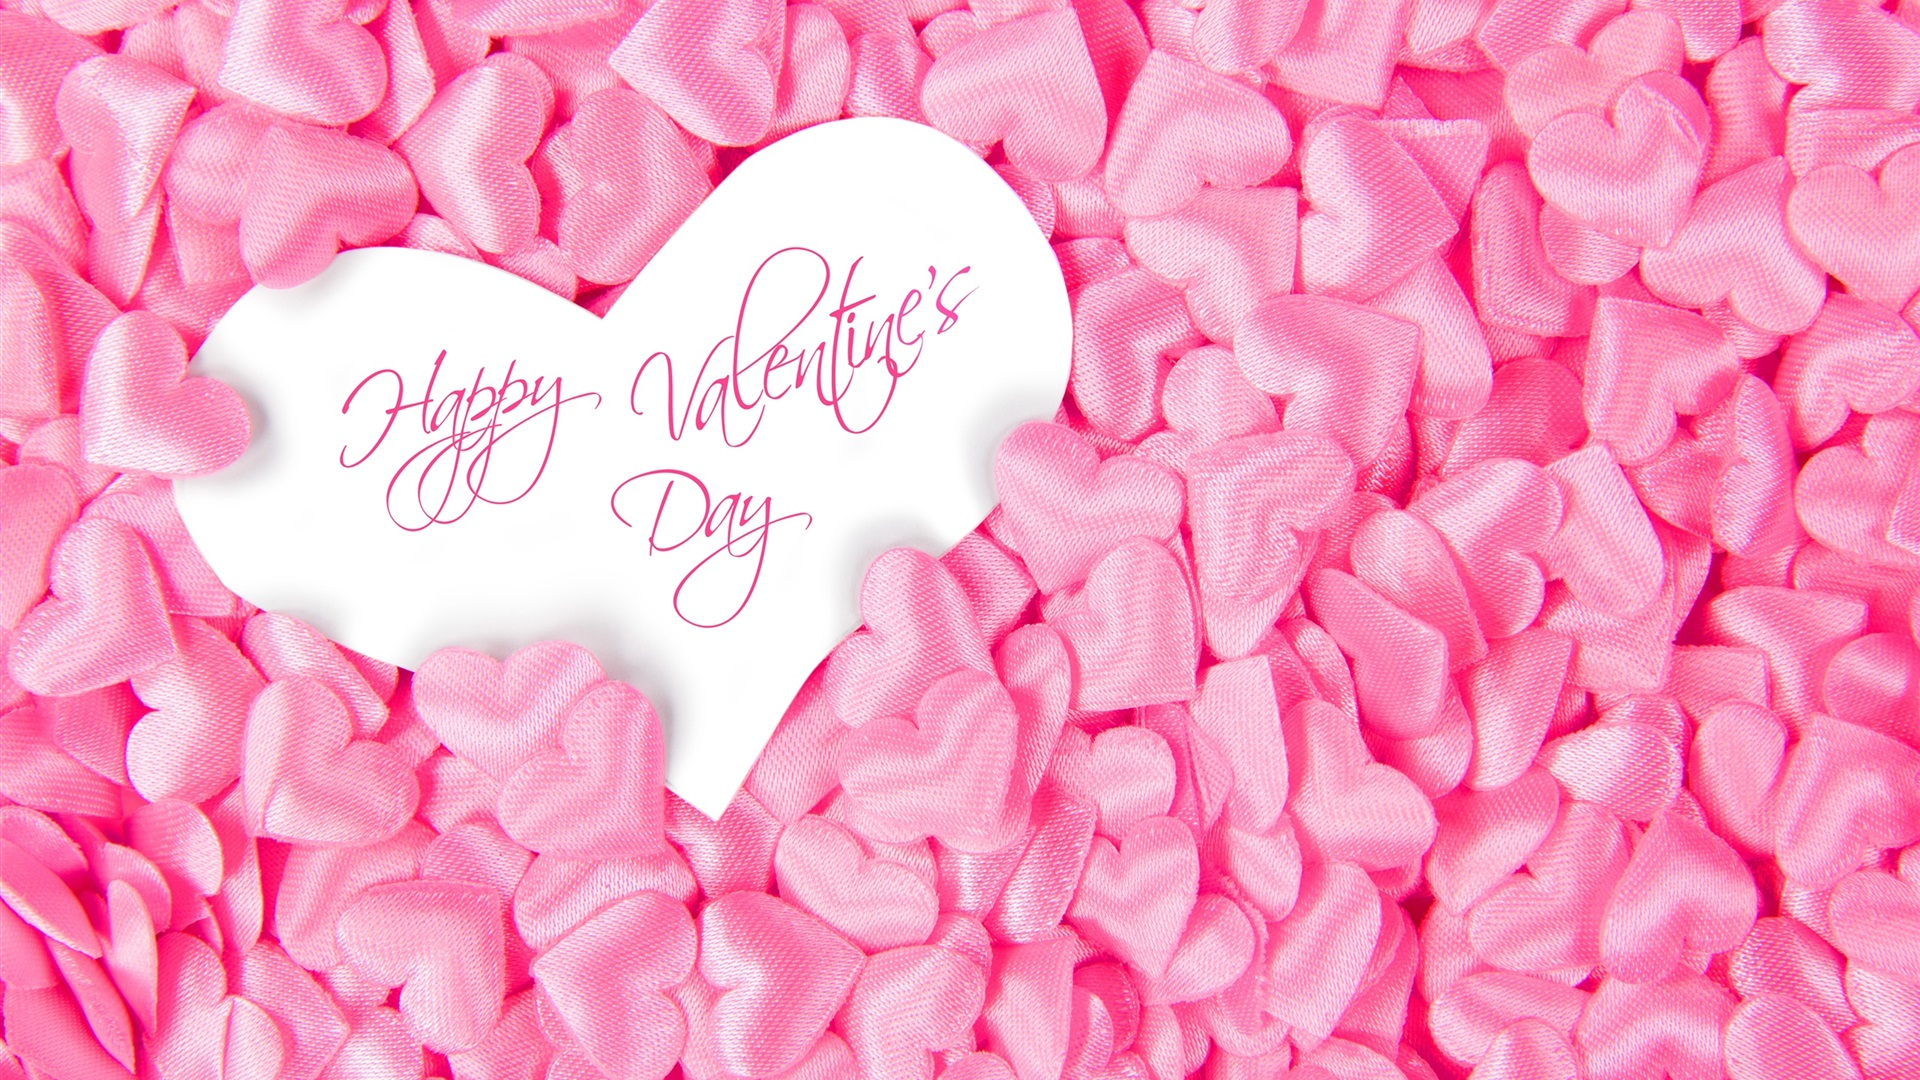 wallpaper happy valentine's day, many pink love hearts 2560x1600 hd